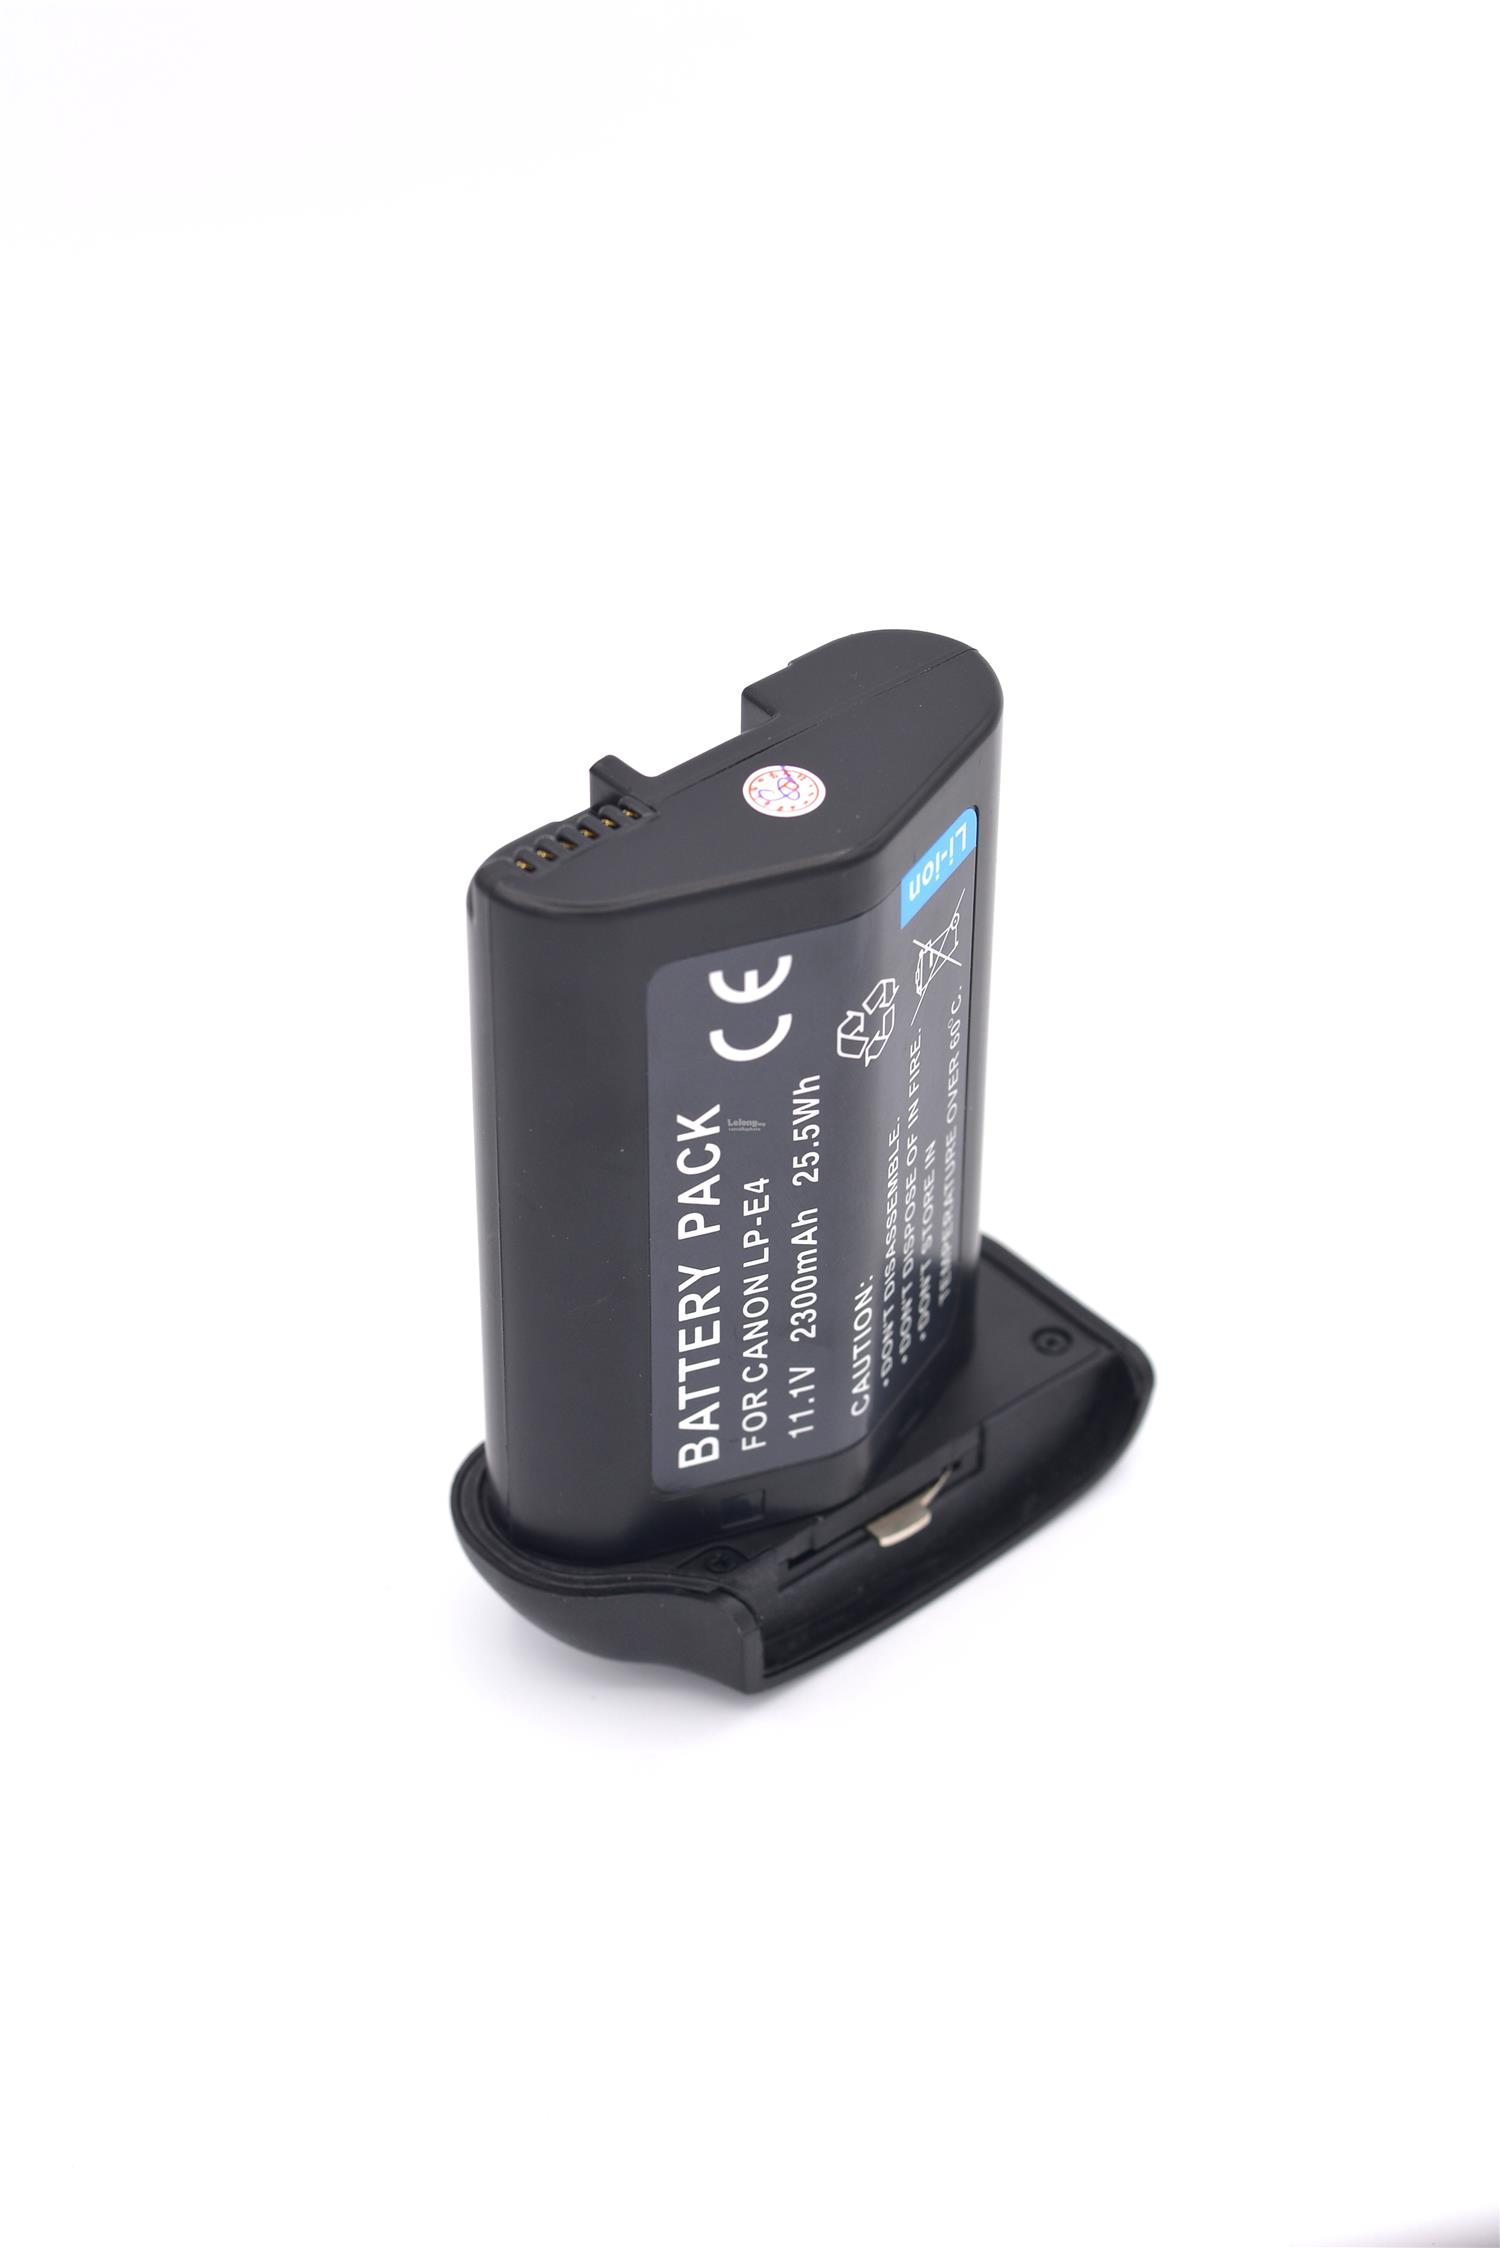 Viloso LP-E4 Battery For Canon EOS 1Ds Mark III IV 1DX 1Ds3 1D3 1D4